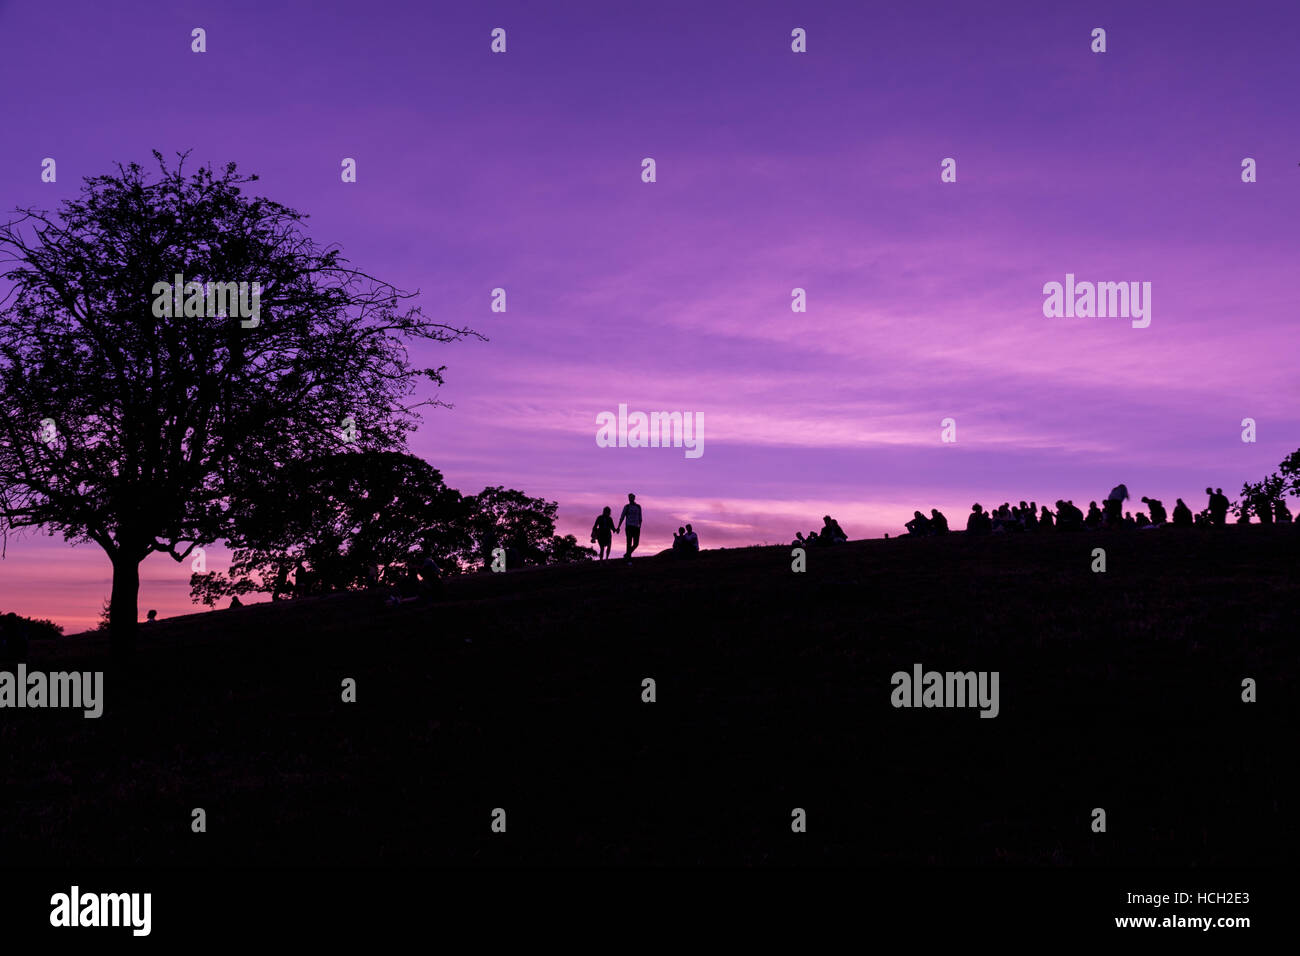 Silhouette of Primrose Hill in London against a purple sky - Stock Image